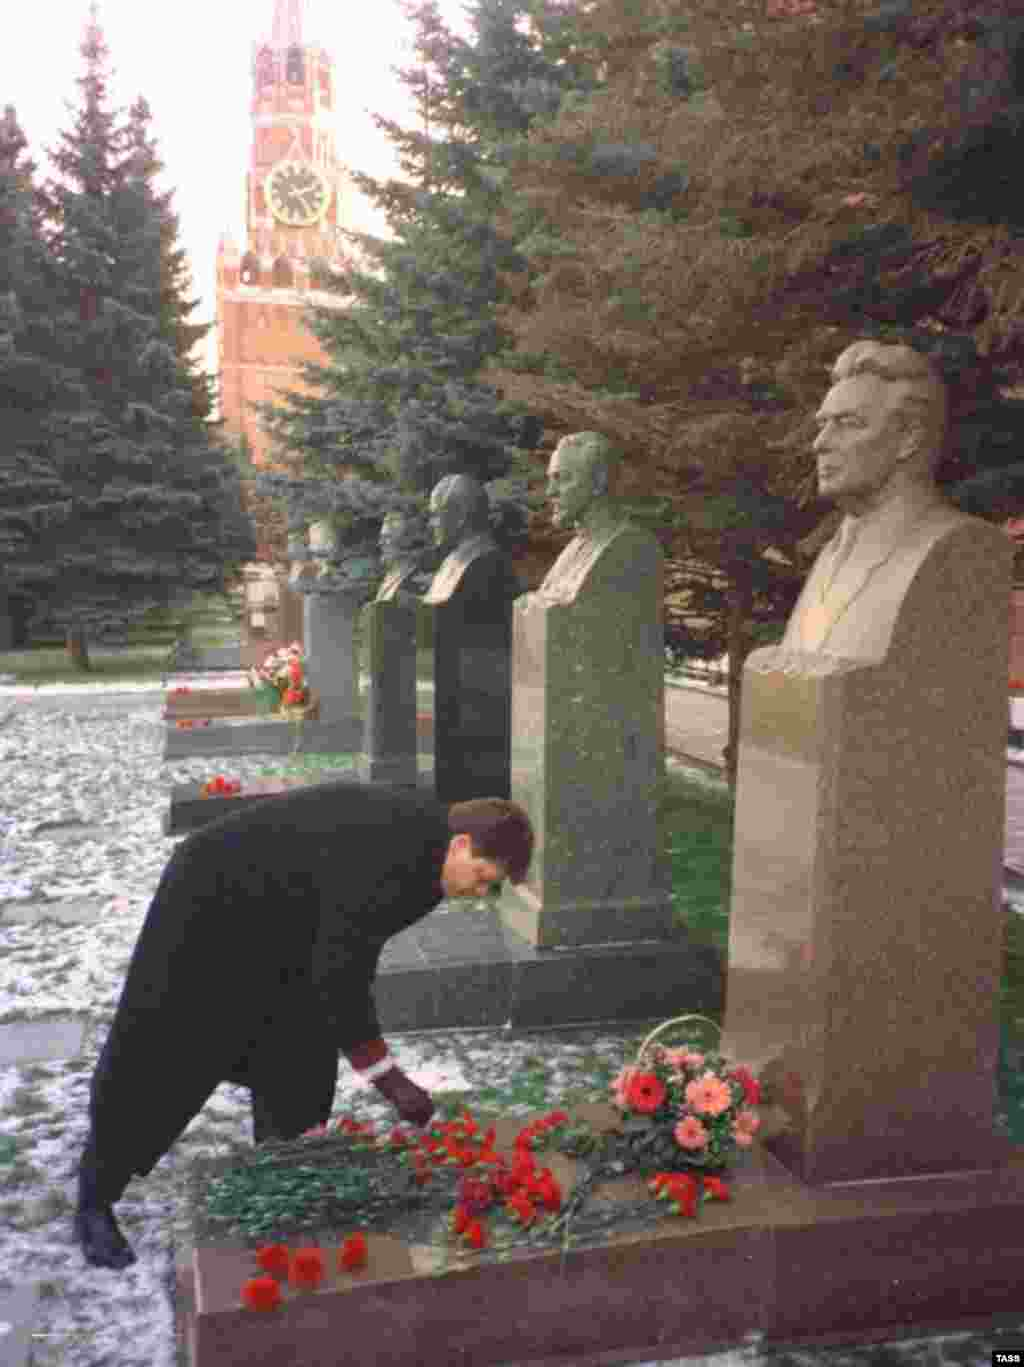 Russia – Soviet leader Leonid Brezhnev's gandson, Andrei, laying flowers at Brezhnev's grave by the kremlin wall, Moscow, 10Nov1998 - rob2007